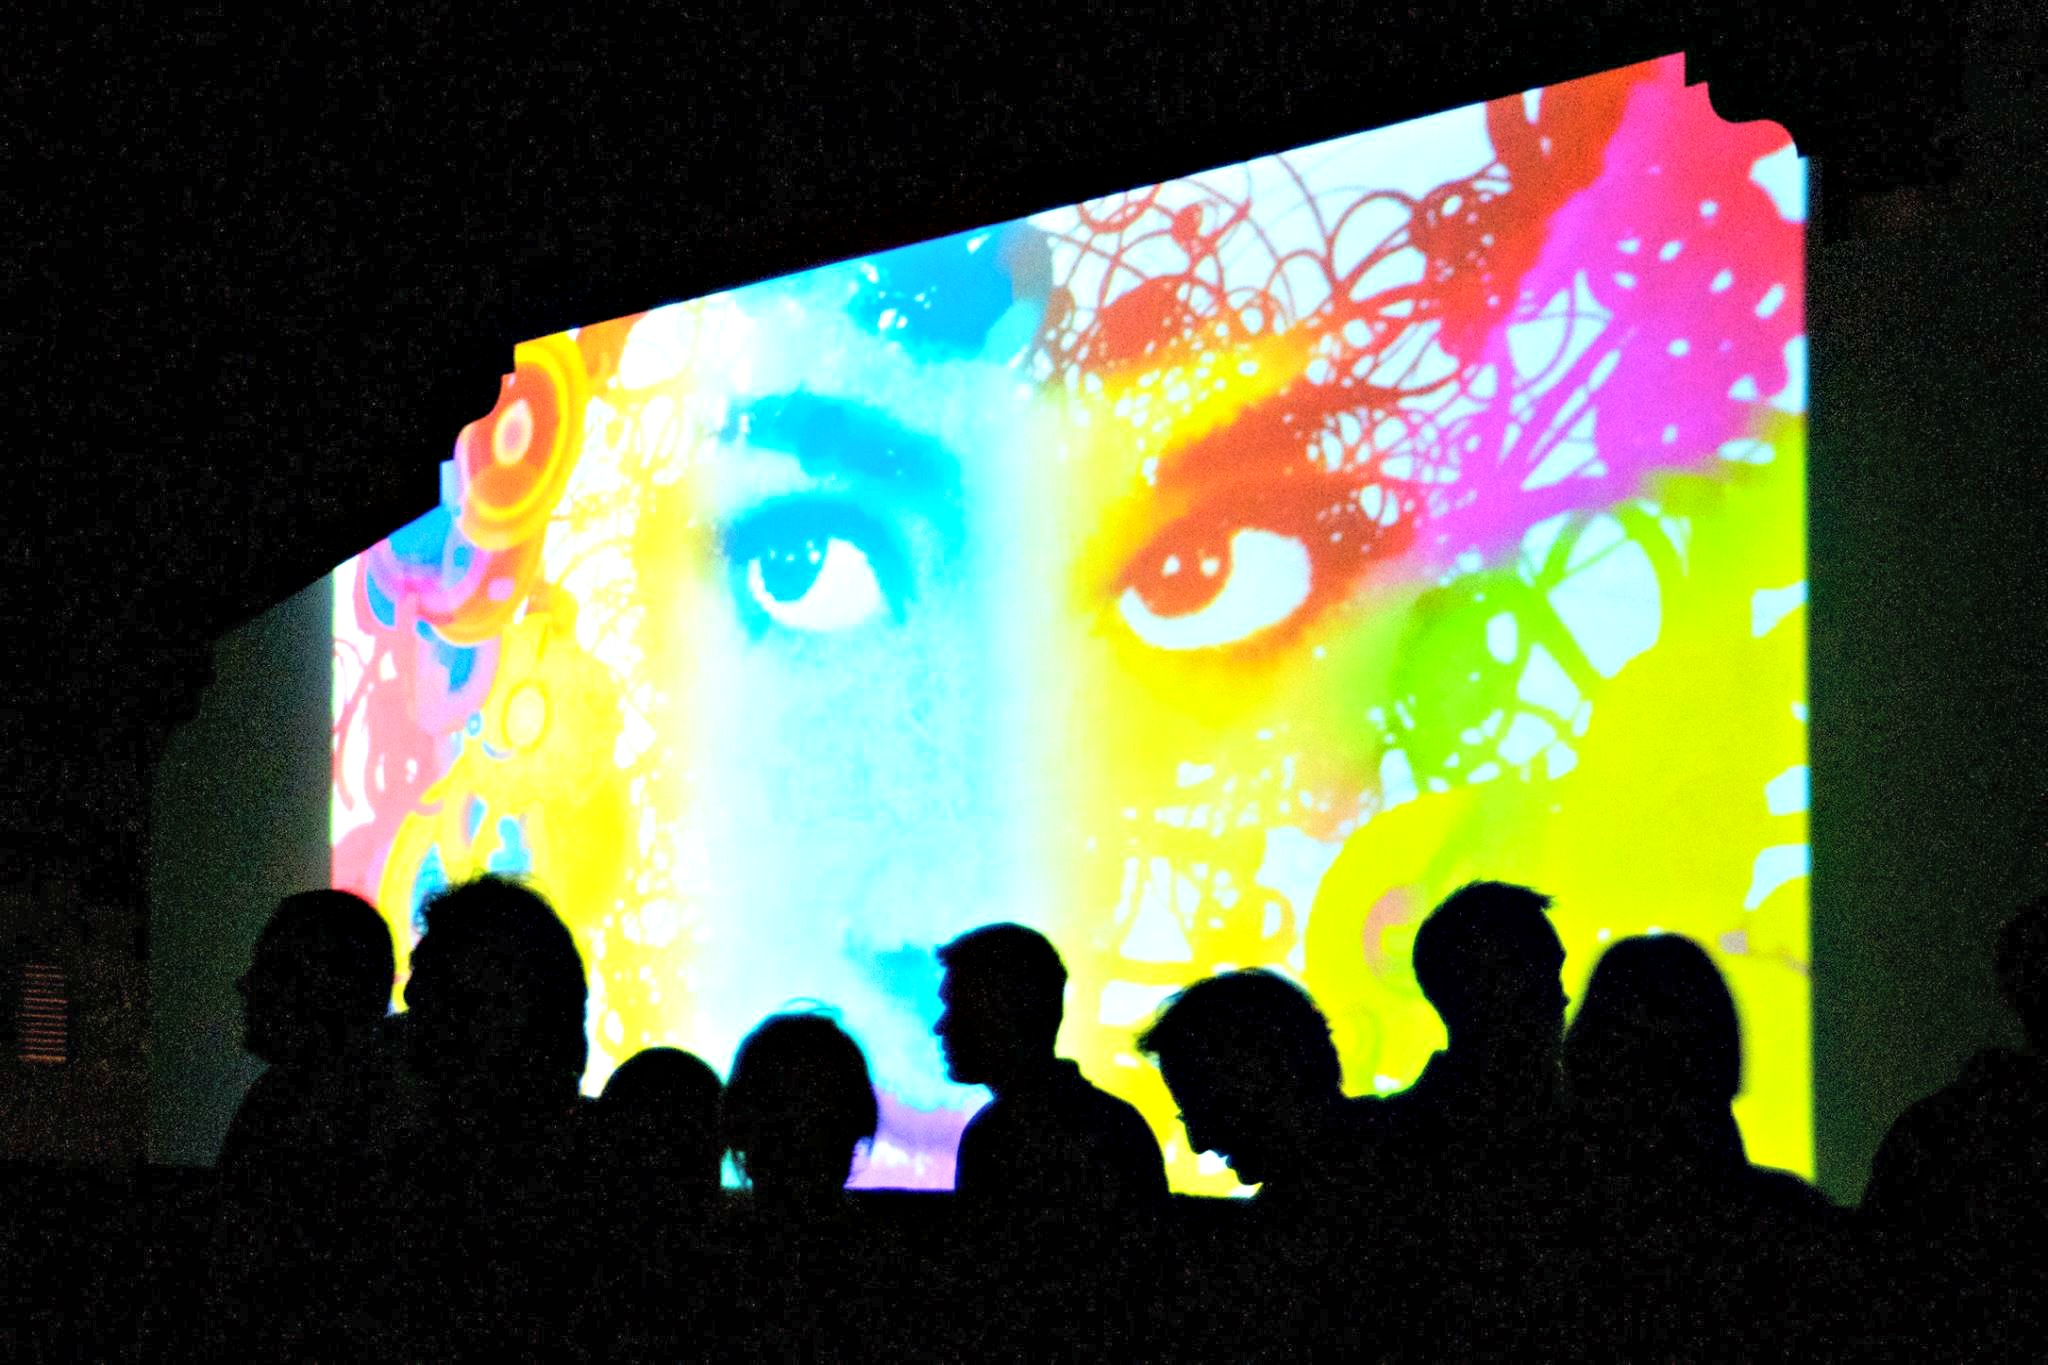 Digitally projected woman's face at Digital Graffiti in Alys Beach for Highway 30-A arts blog